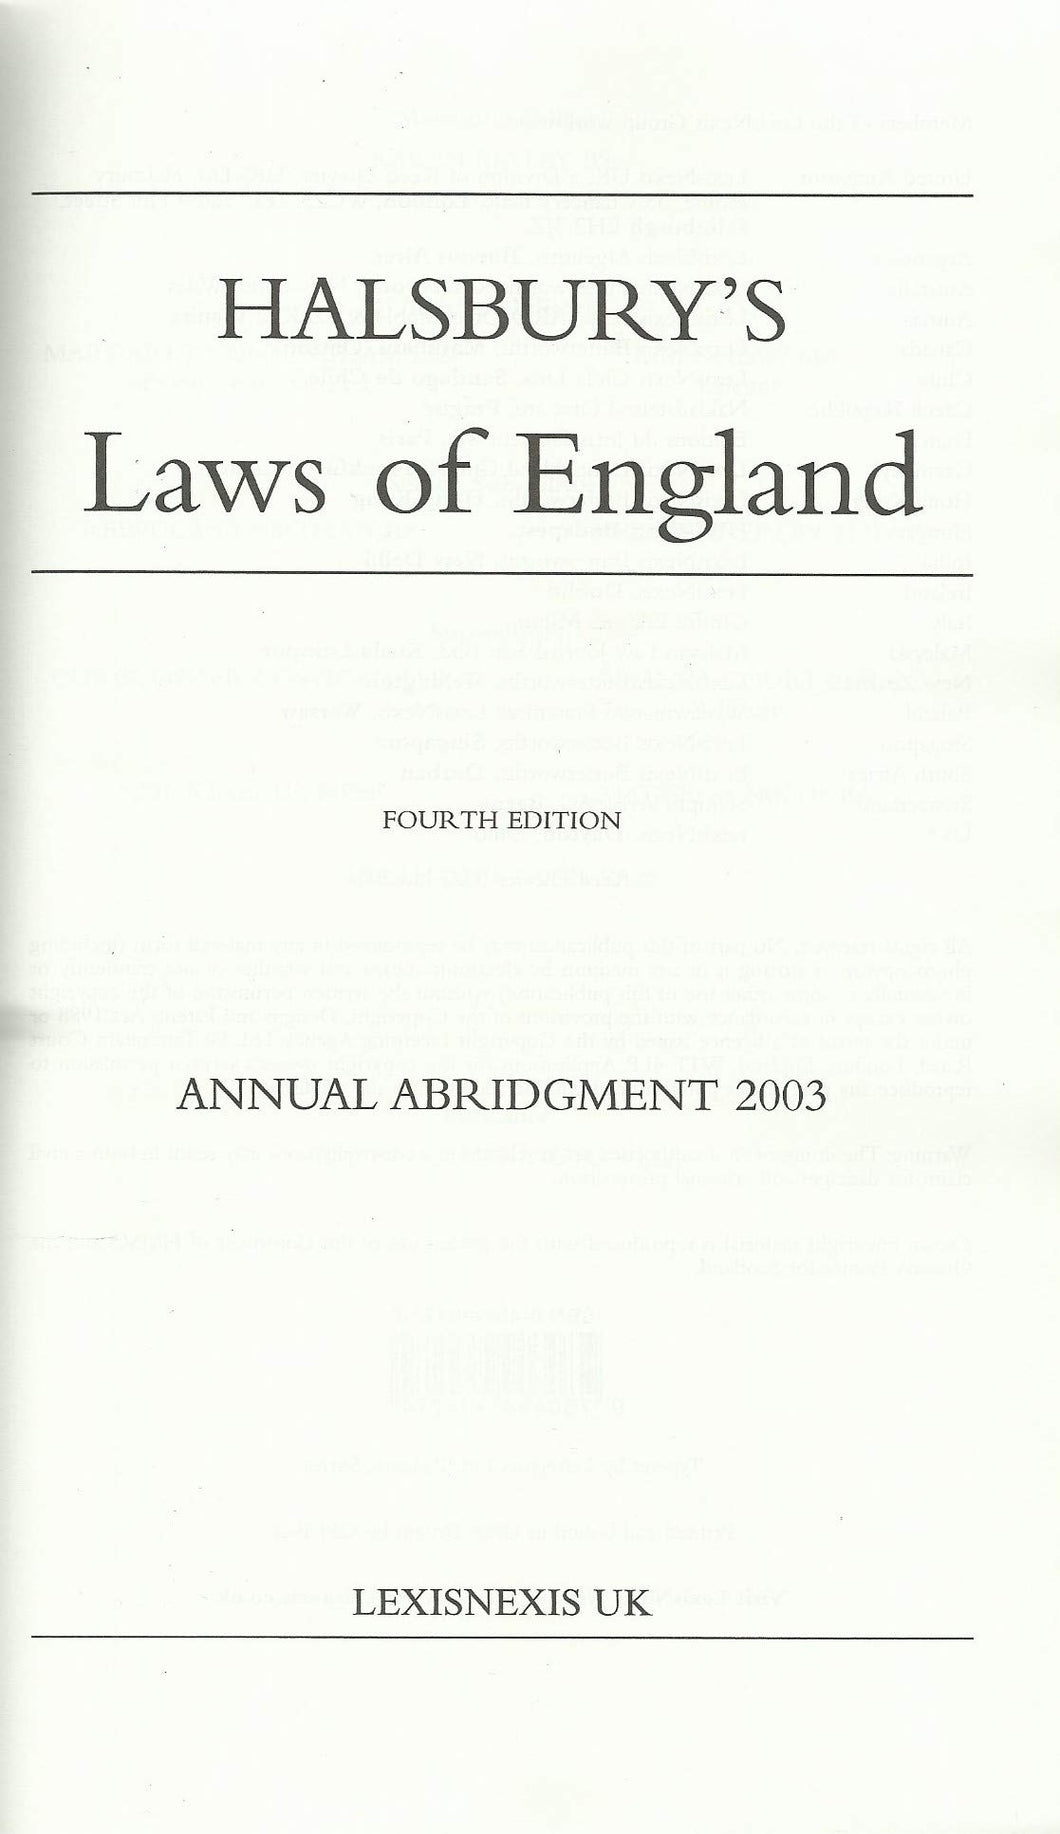 Halsbury's Laws of England Annual Abridgment 2003